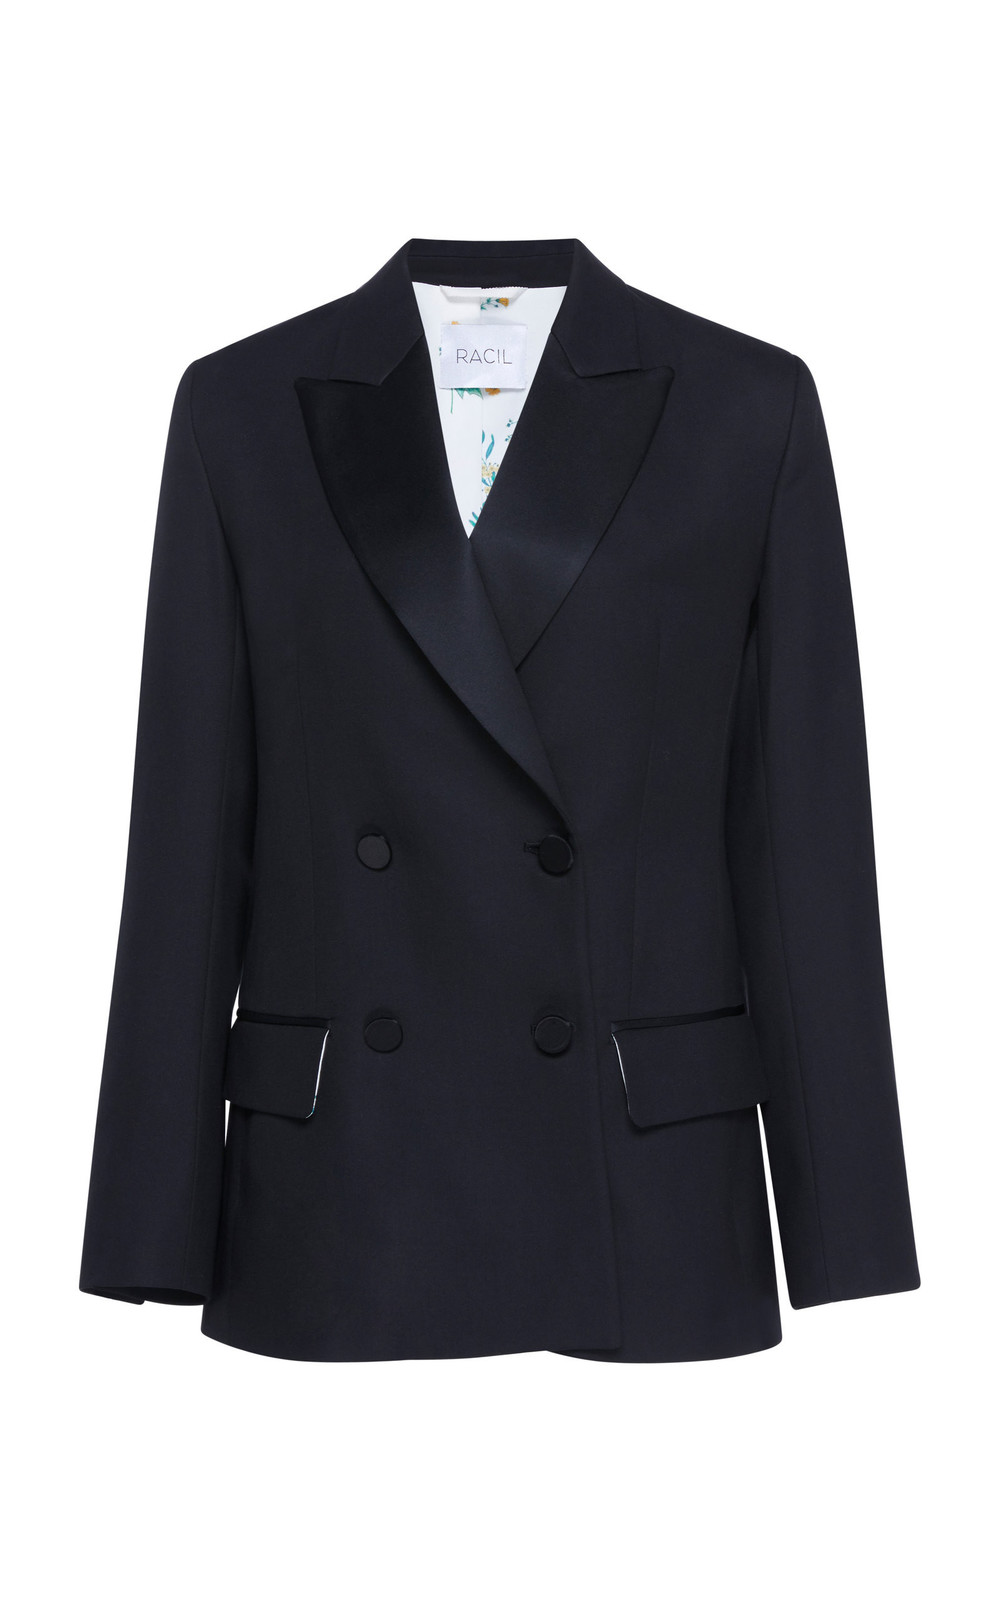 Racil Winston Double Breasted Wool Blazer in black